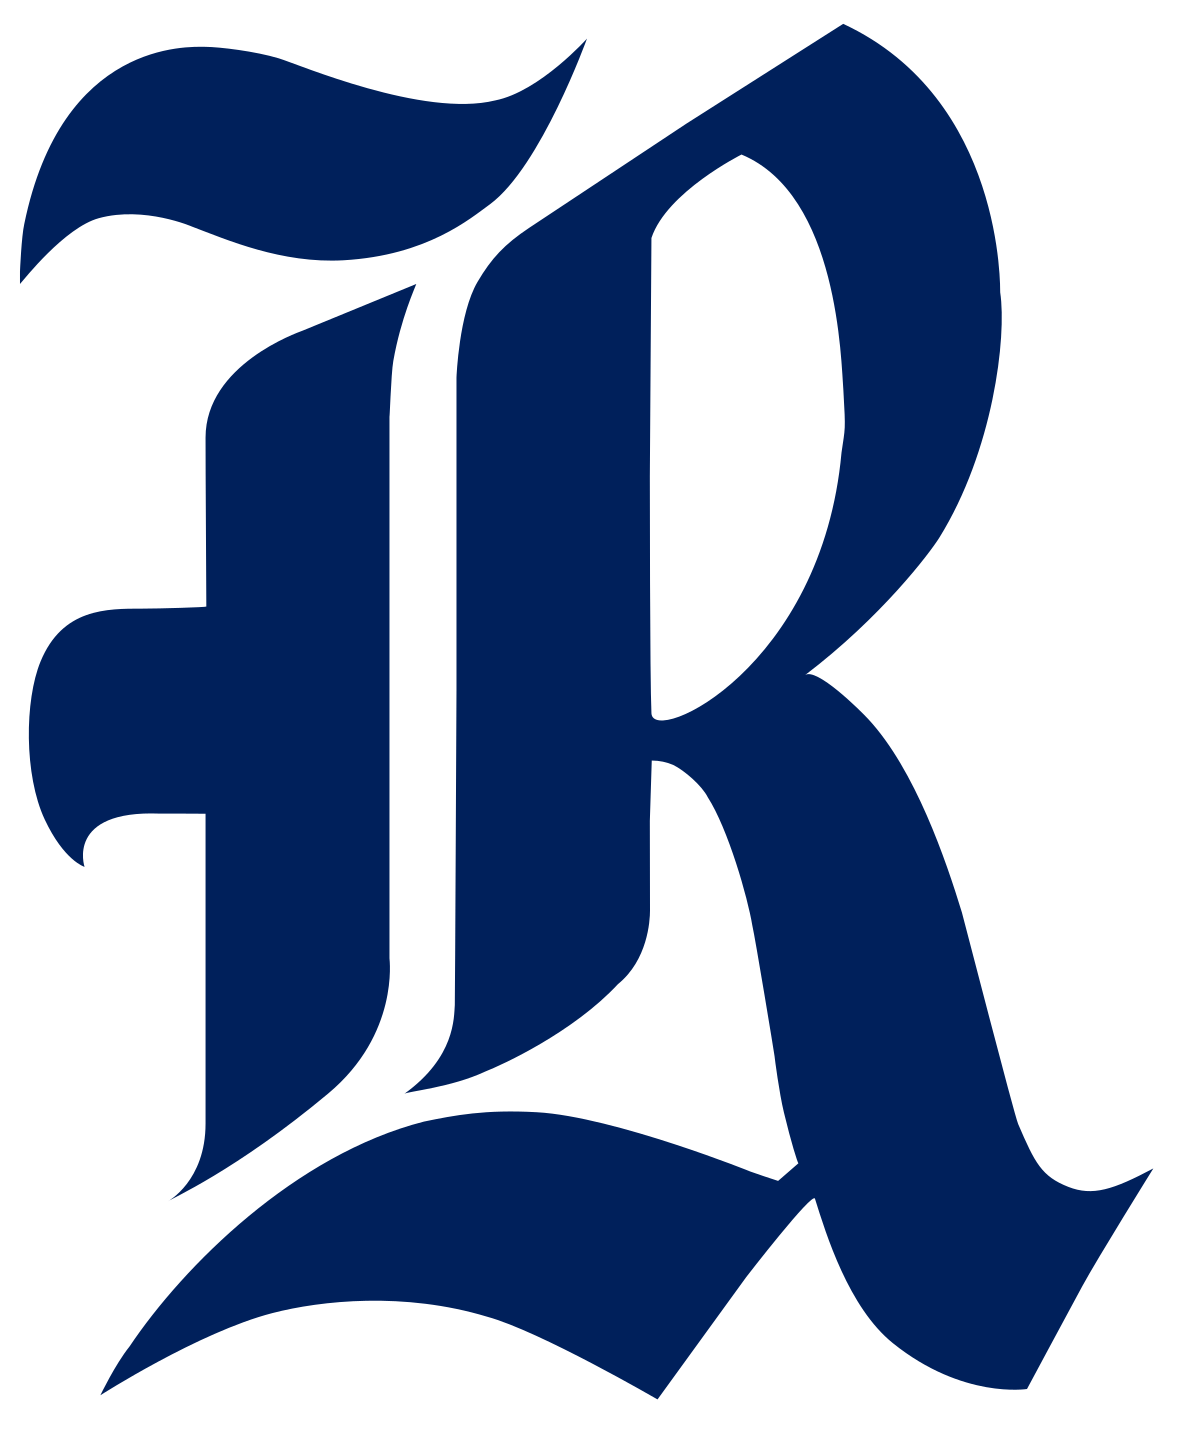 Rice owls wikipedia . R clipart old english